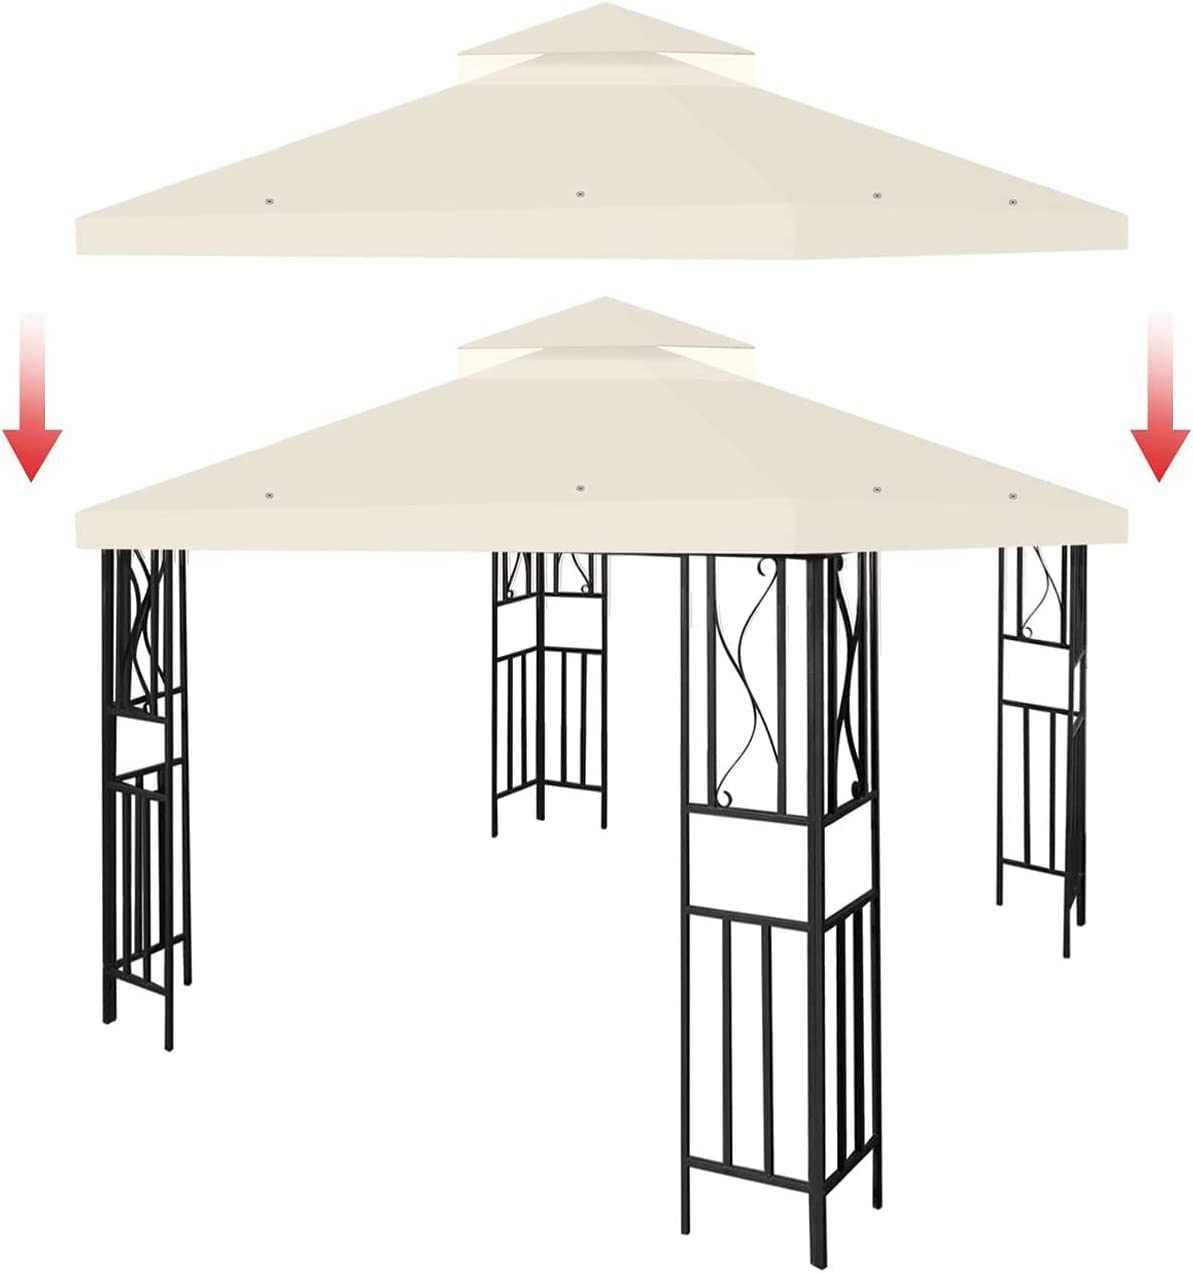 Dare You 10' x New popularity Two Tier Credence Canopy Gazebo TOP Replacement Cover